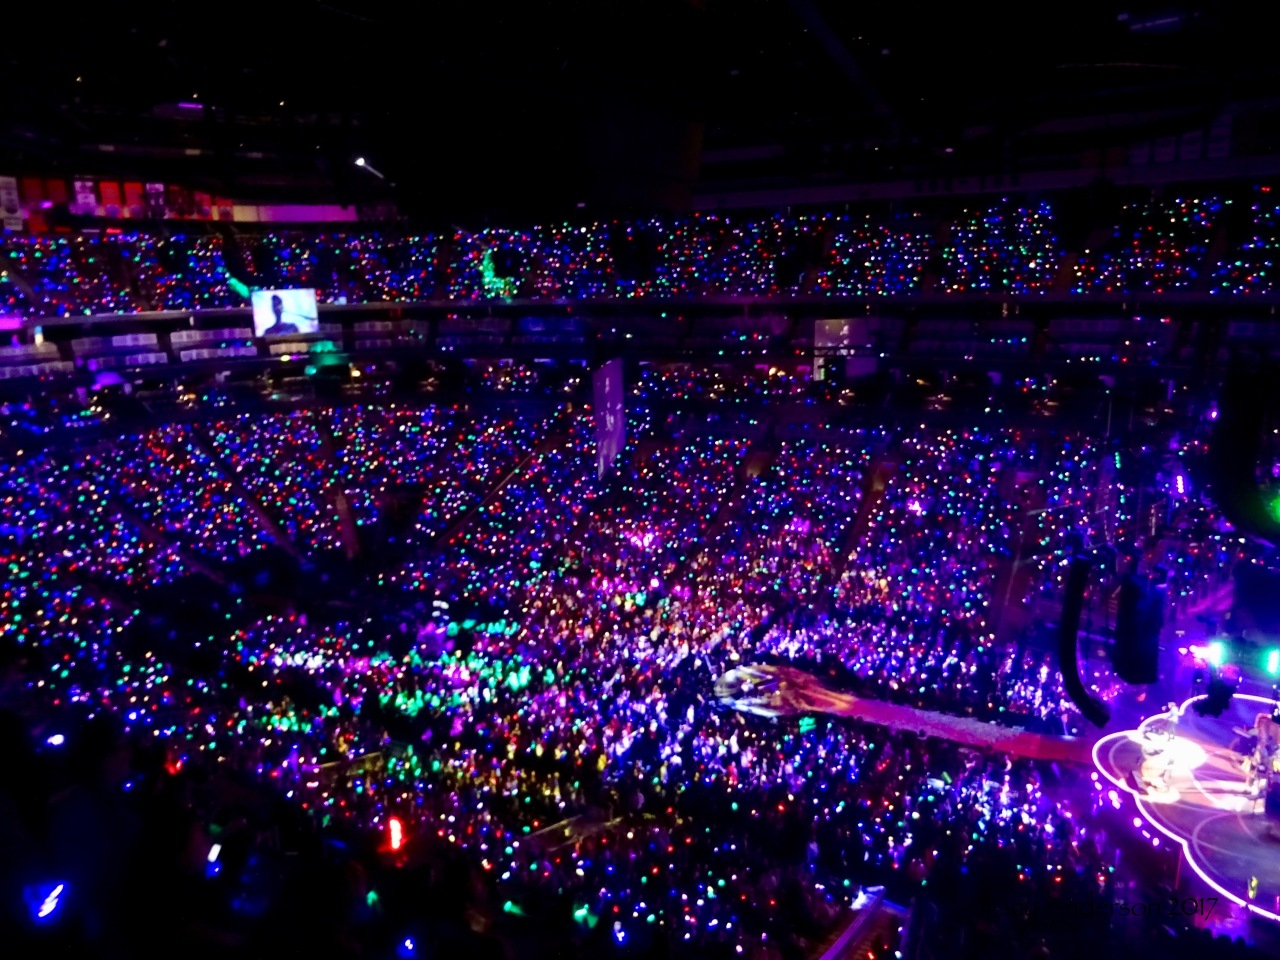 An Arena Full of Lights Coldplay Rogers Place Edmonton September 27 2017